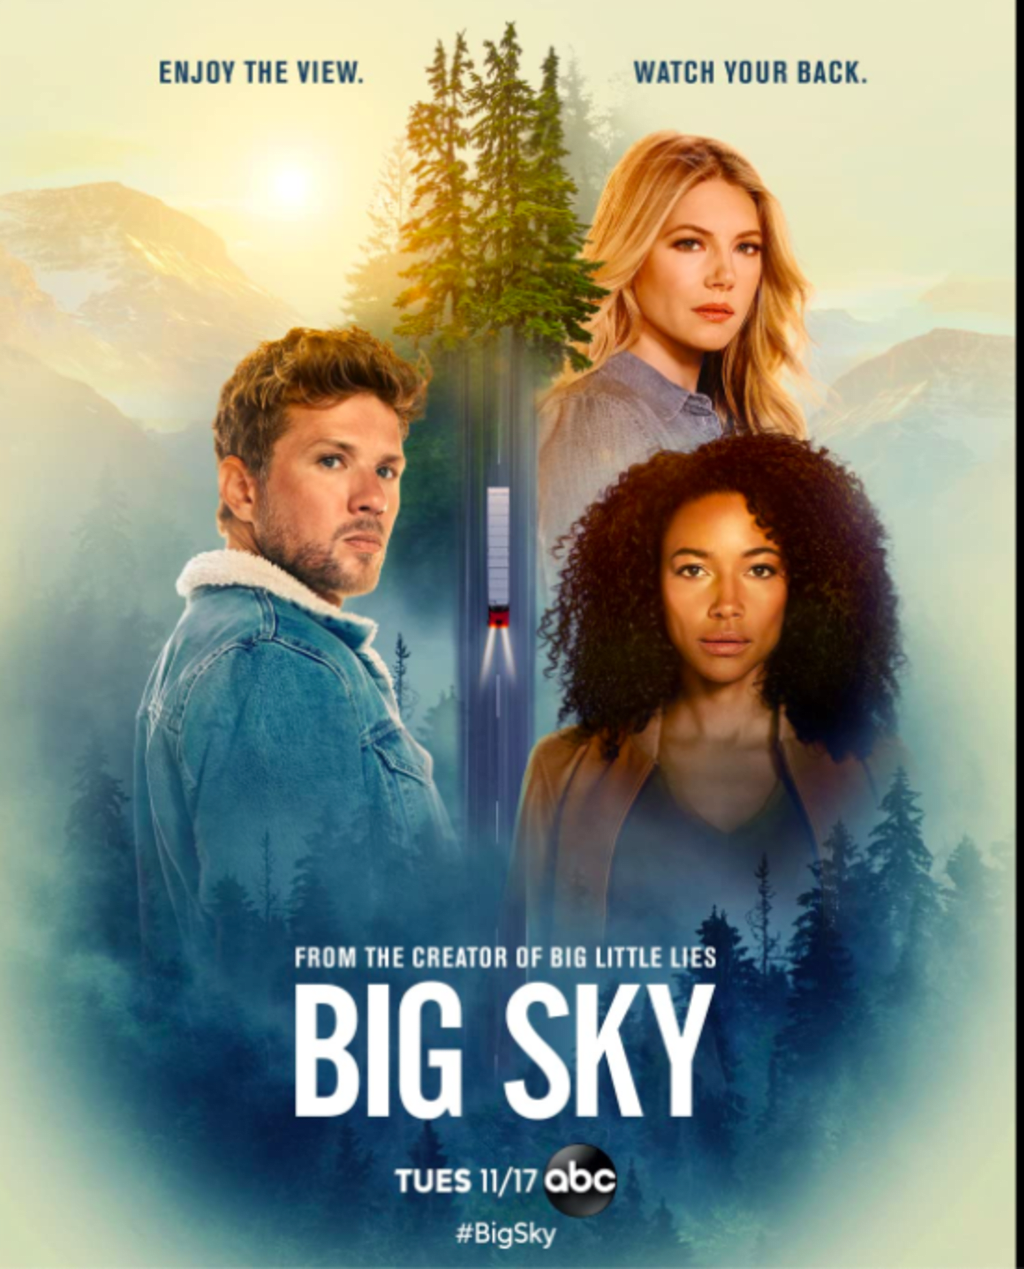 Review of 'Big Sky' 1.2